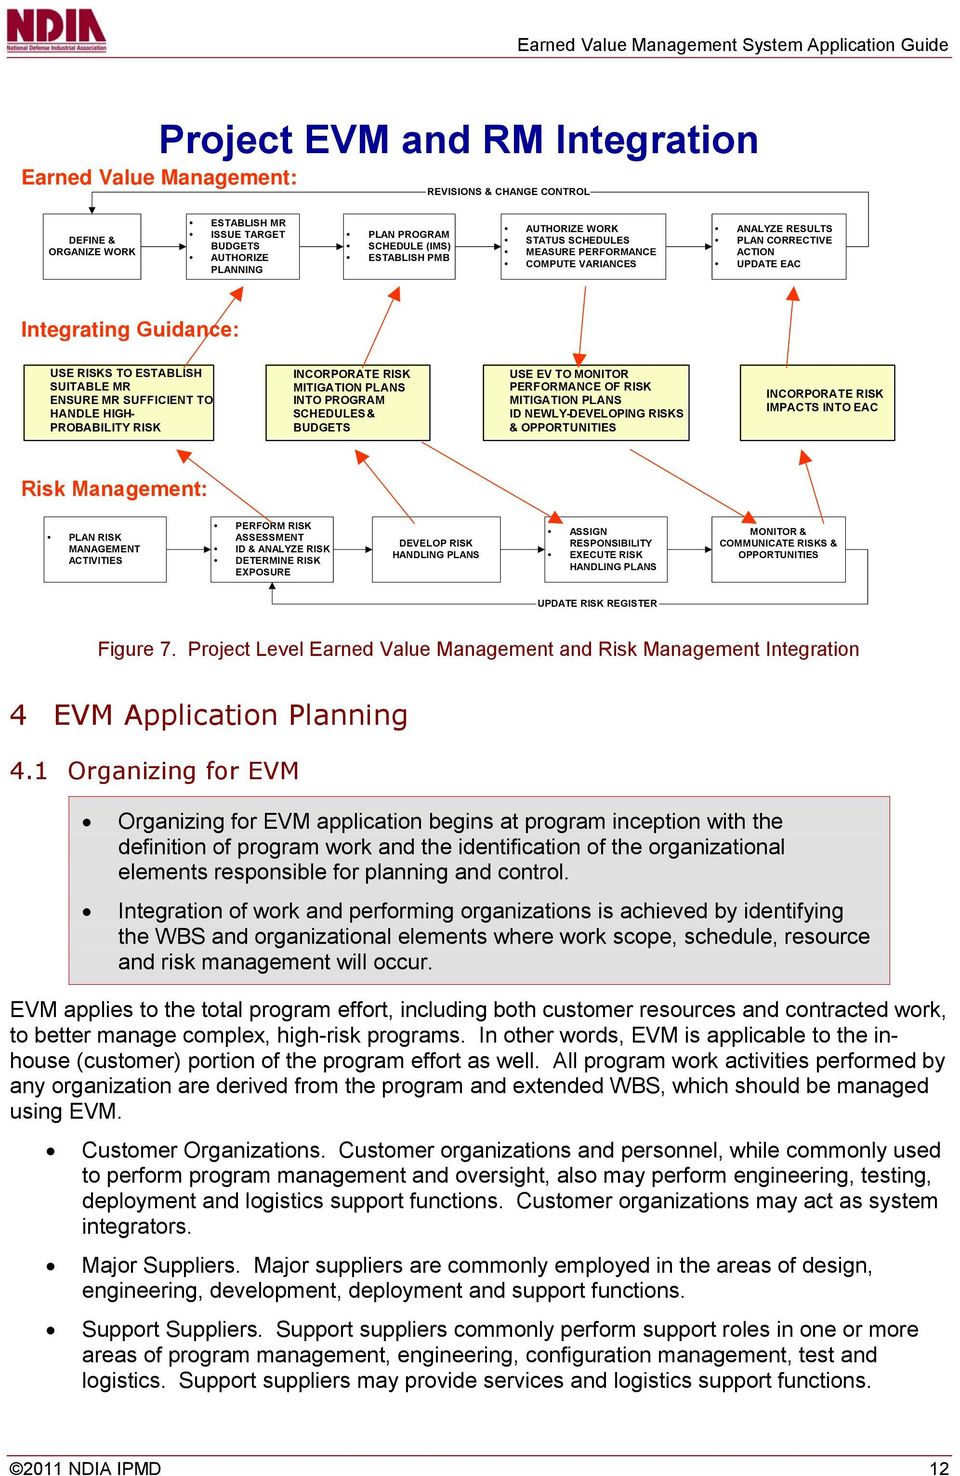 SUFFICIENT TO HANDLE HIGH- PROBABILITY RISK INCORPORATE RISK MITIGATION PLANS INTO PROGRAM SCHEDULES & BUDGETS USE EV TO MONITOR PERFORMANCE OF RISK MITIGATION PLANS ID NEWLY-DEVELOPING RISKS &